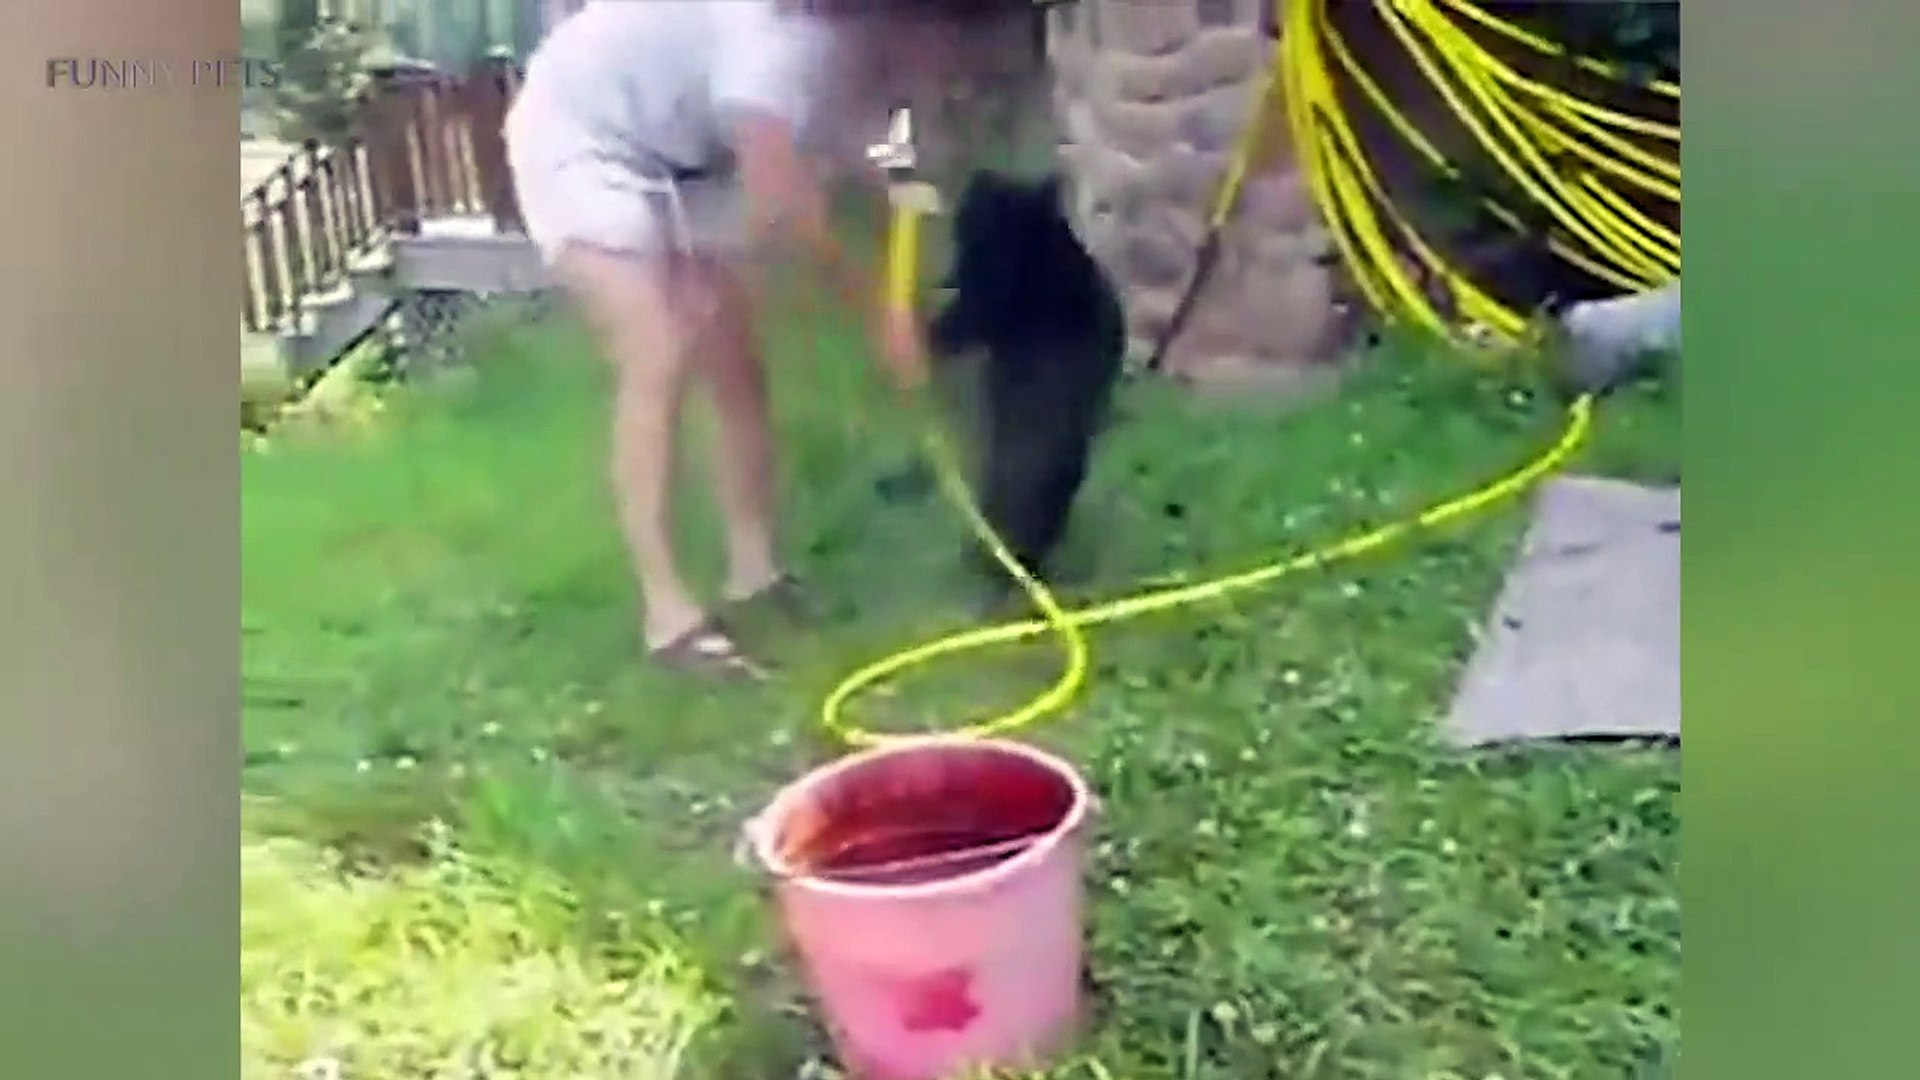 Cute Bear Cubs  Funny Baby Bears Playing [Funny Pets